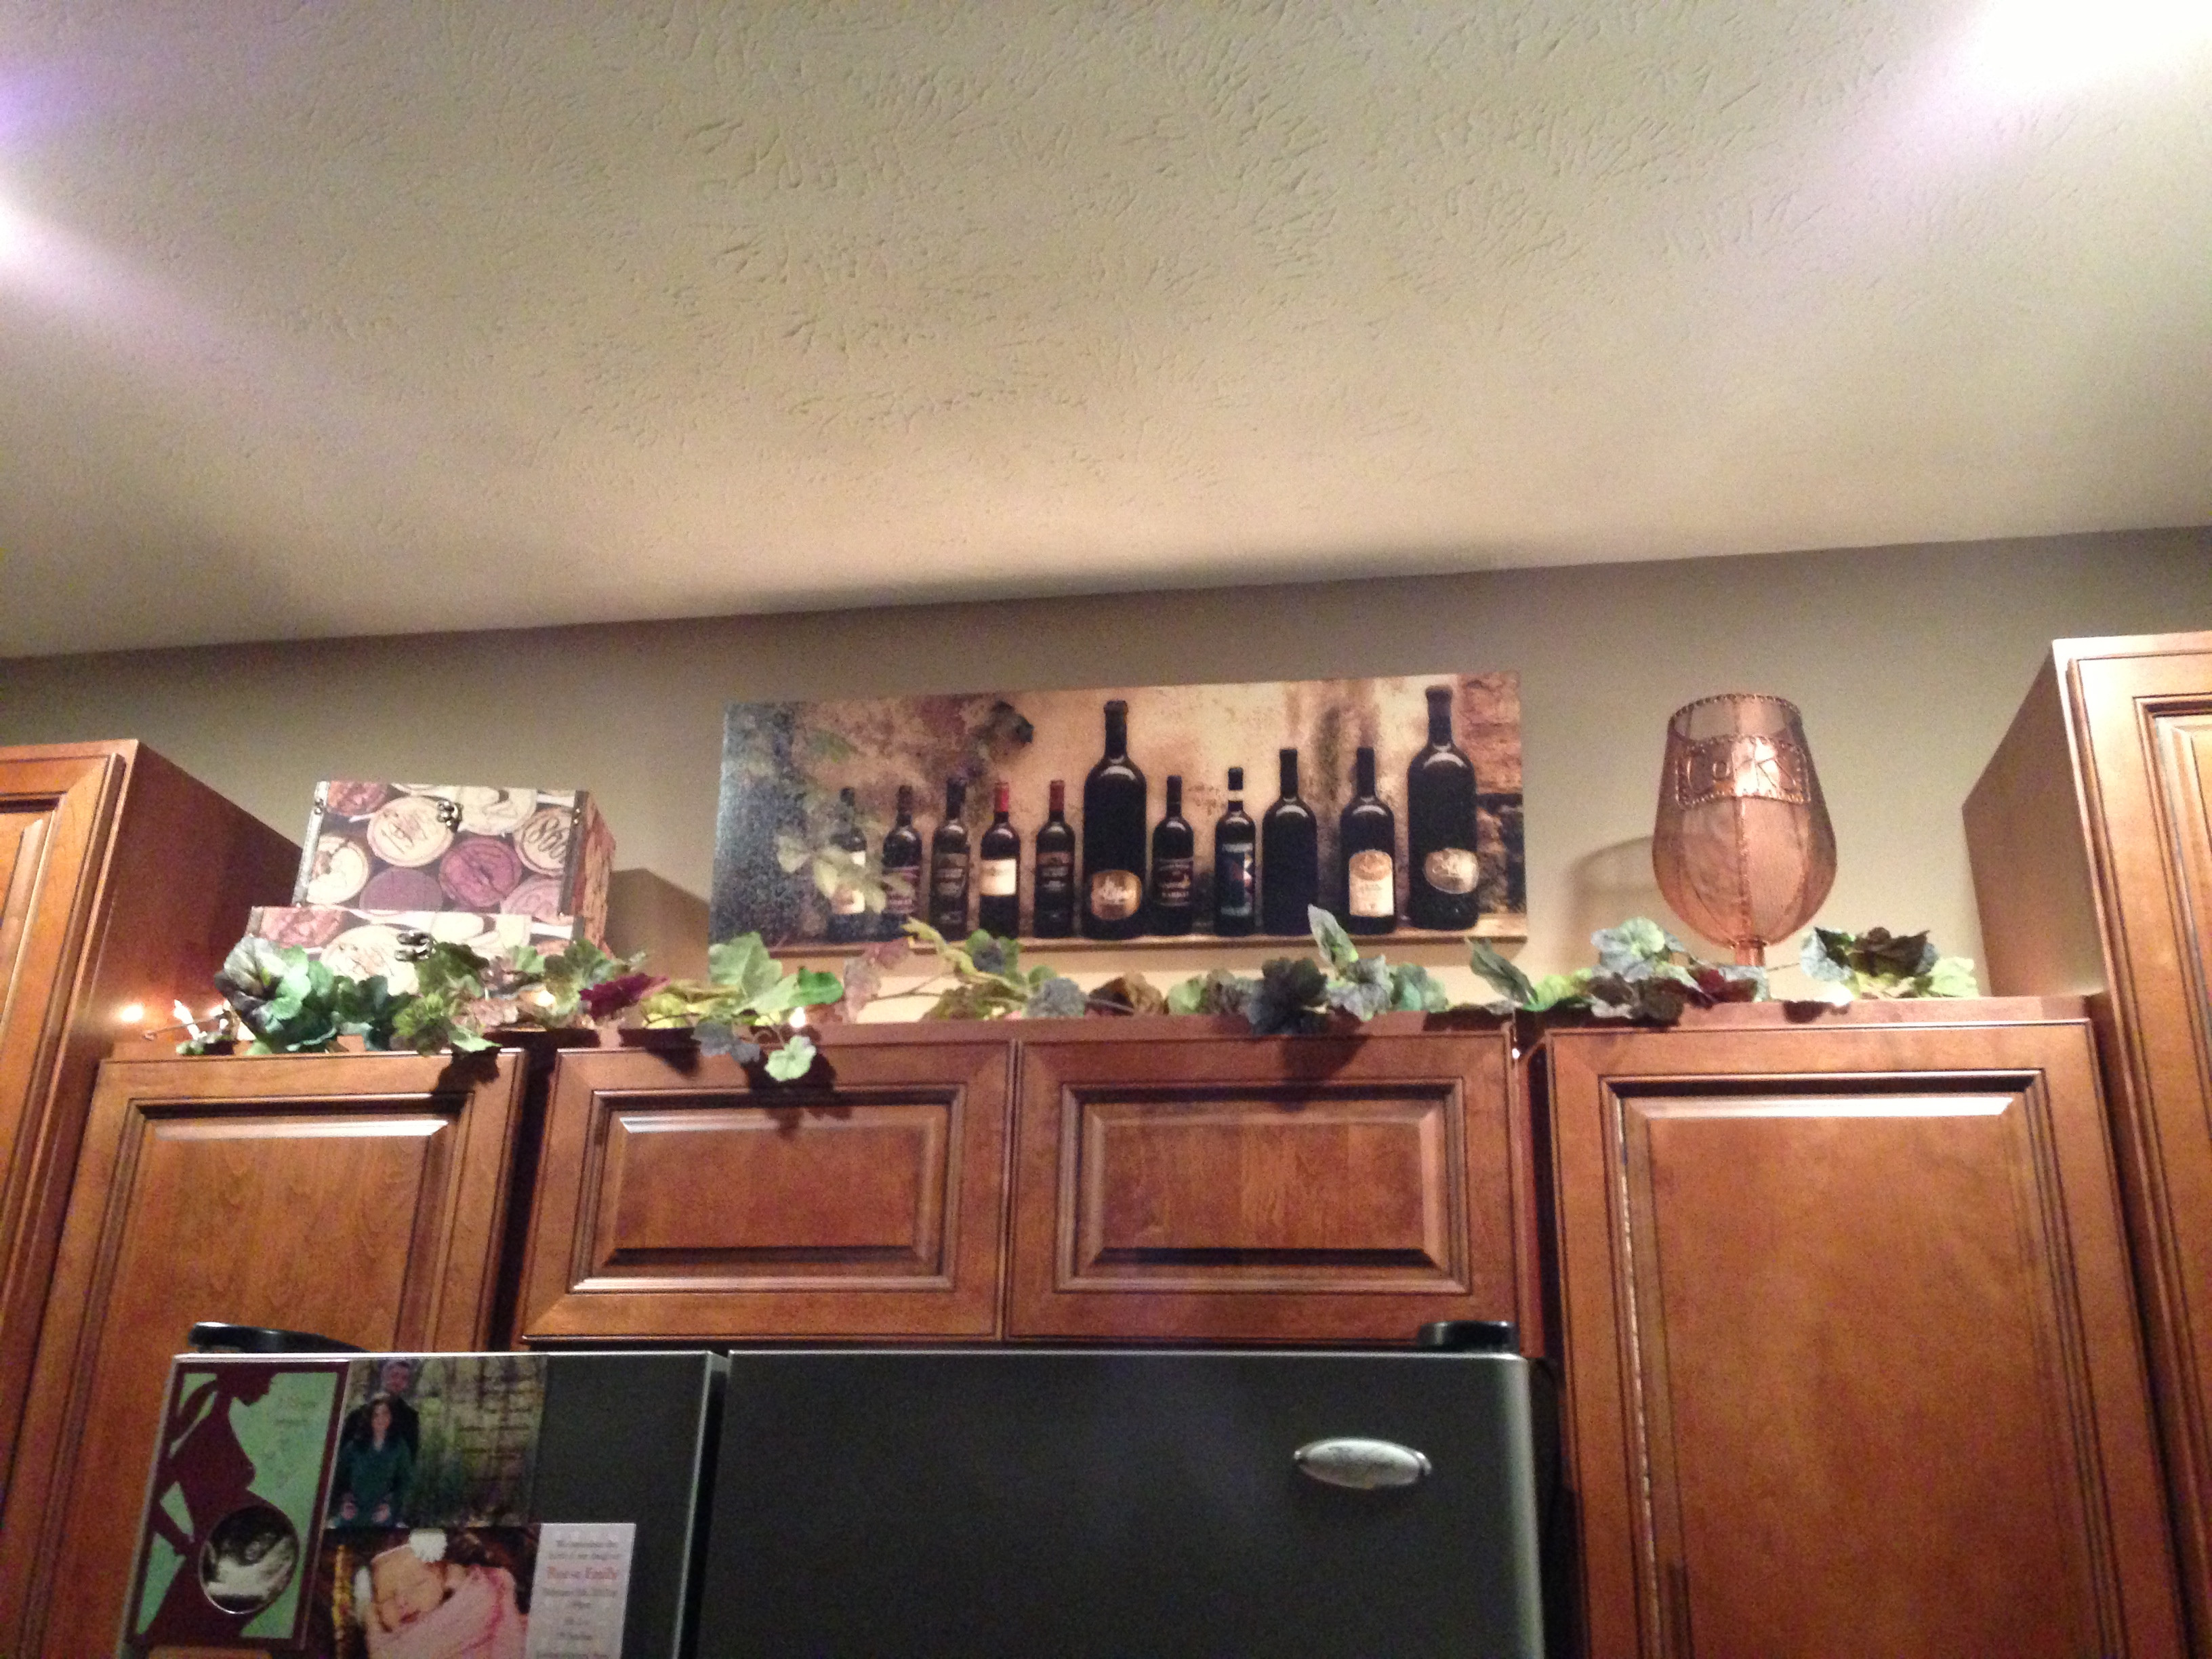 Best ideas about Wine Themed Kitchen Ideas . Save or Pin Parisian Wine Kitchen Décor with Nice Lighting and Writing Now.